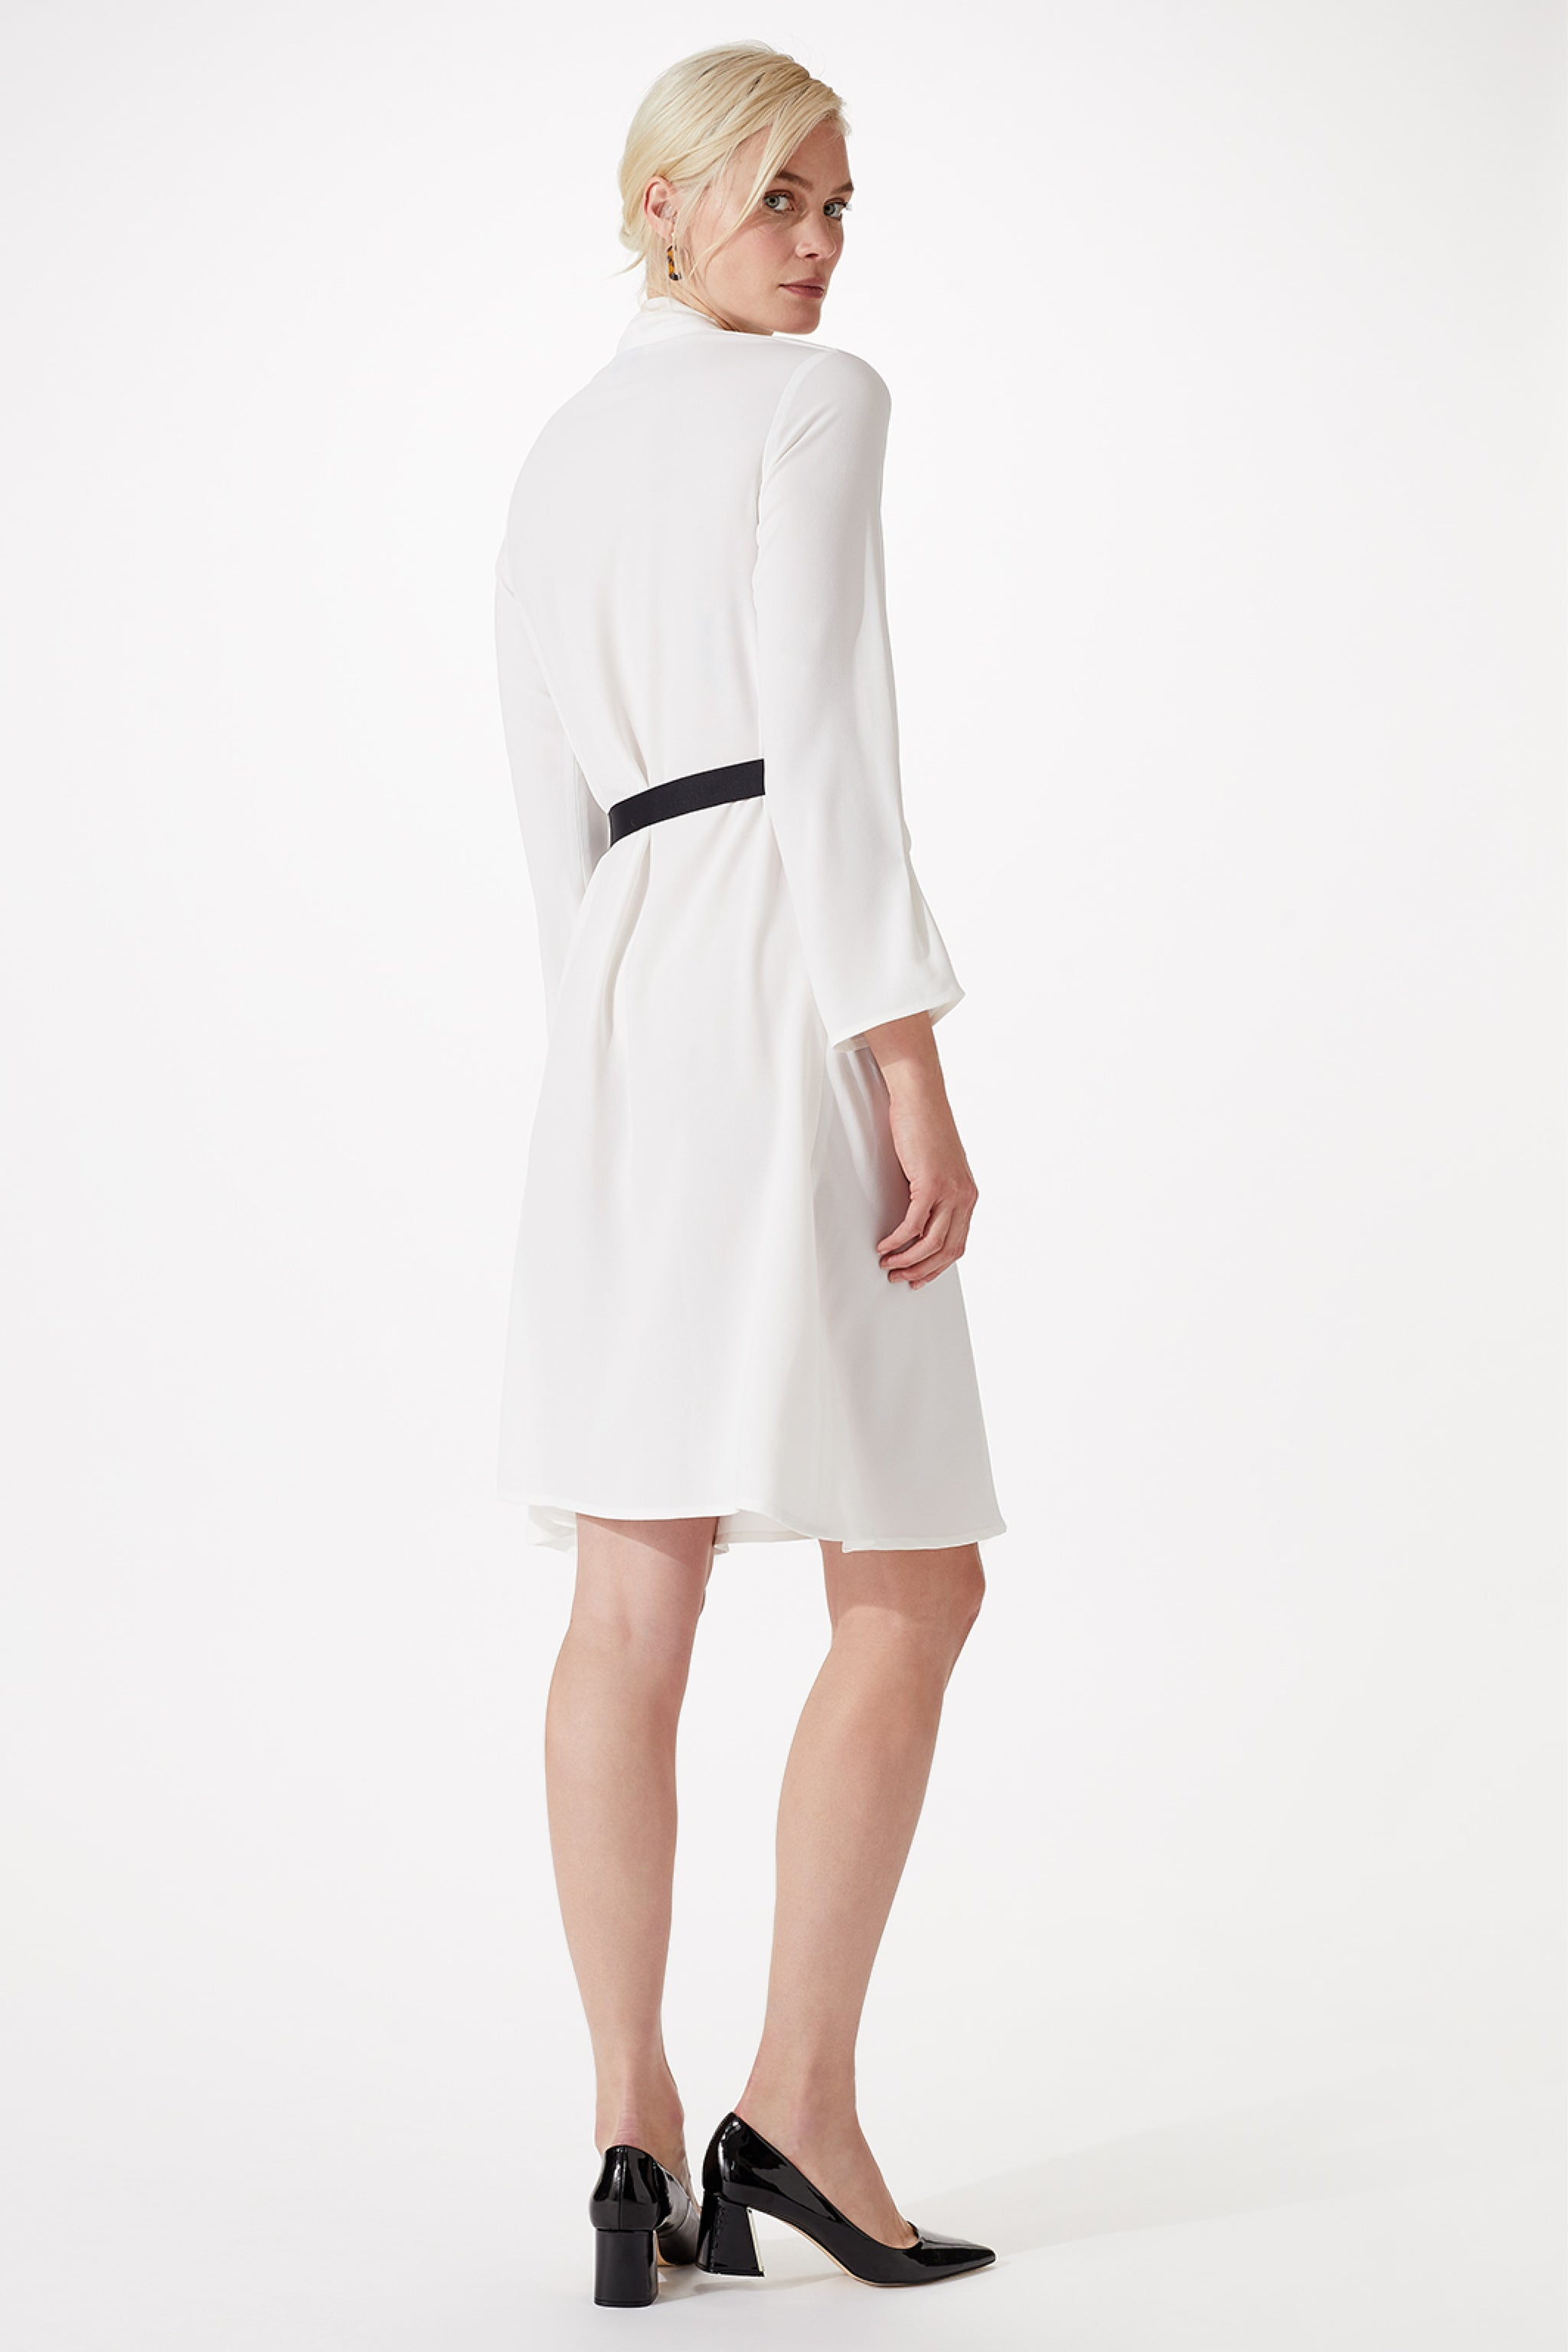 Cheyne White Dress